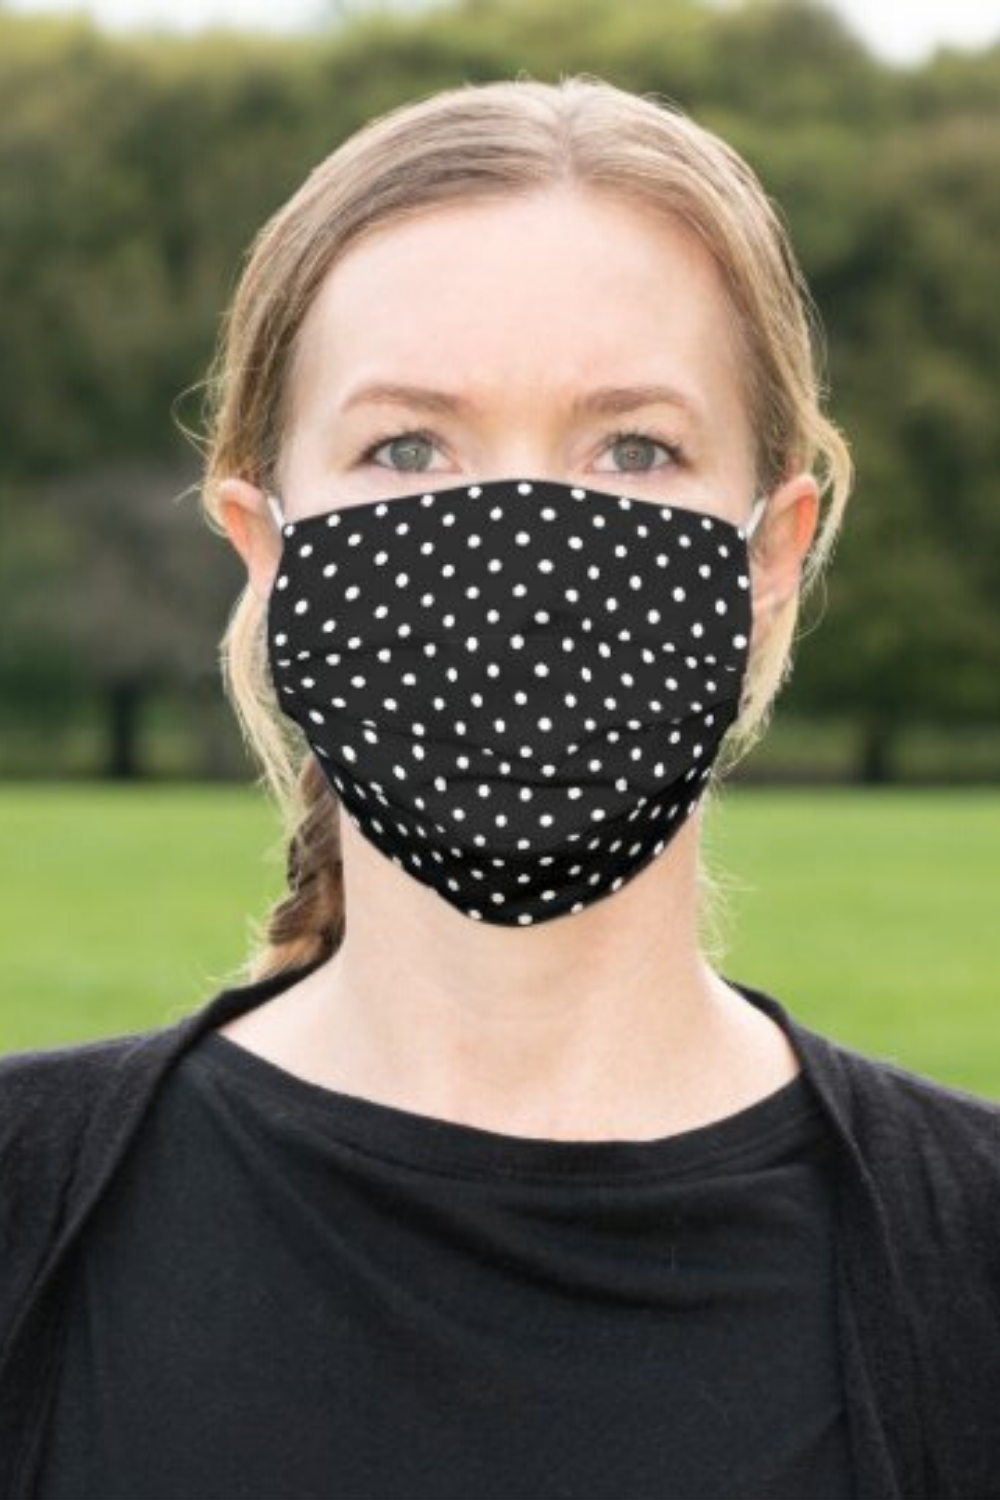 Classic Black and White Polka Dot Pattern Cloth Face Mask